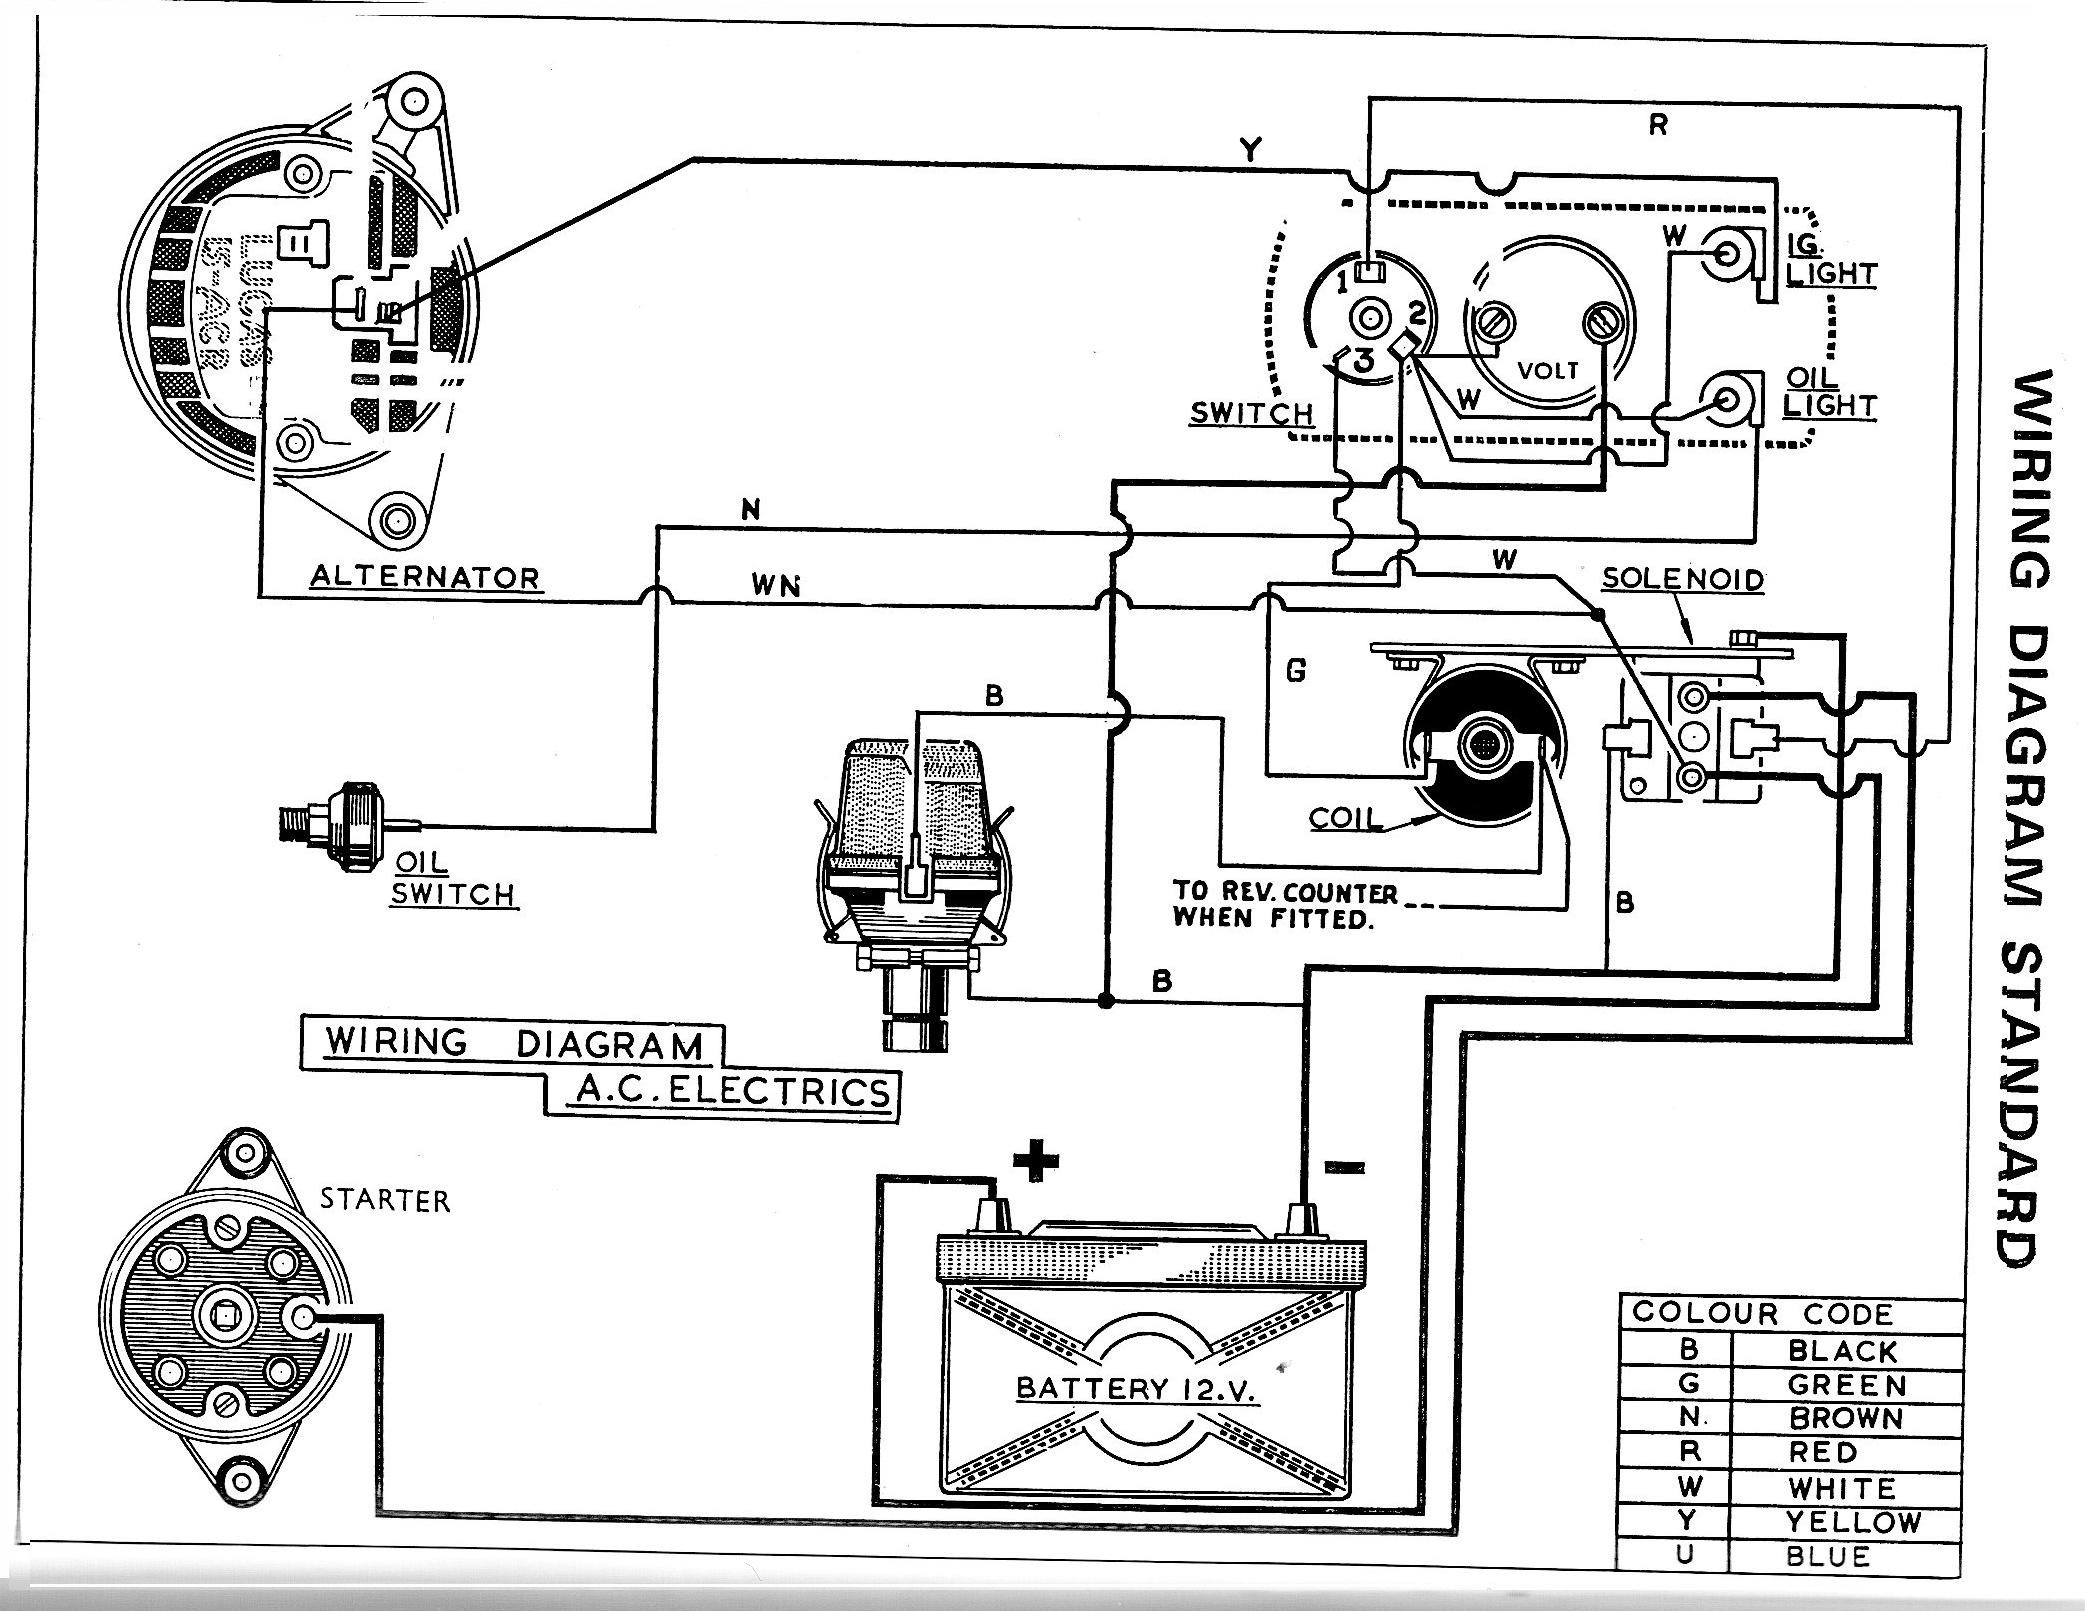 lucas ford tractor ignition switch wiring diagram for 3 gang 1 way light alternator elegant